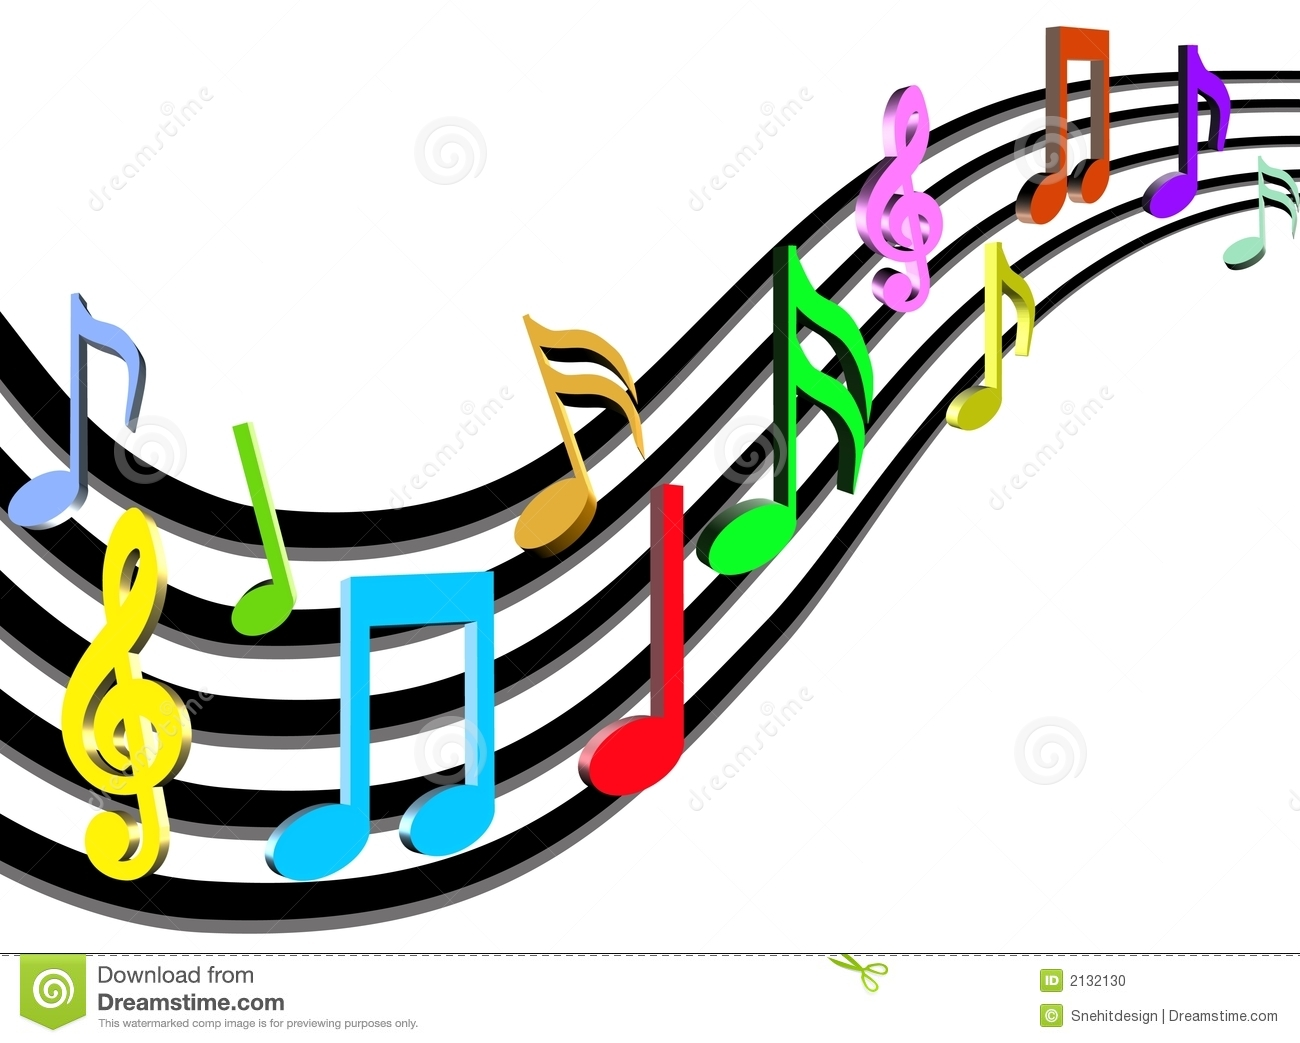 Image result for Music notes image